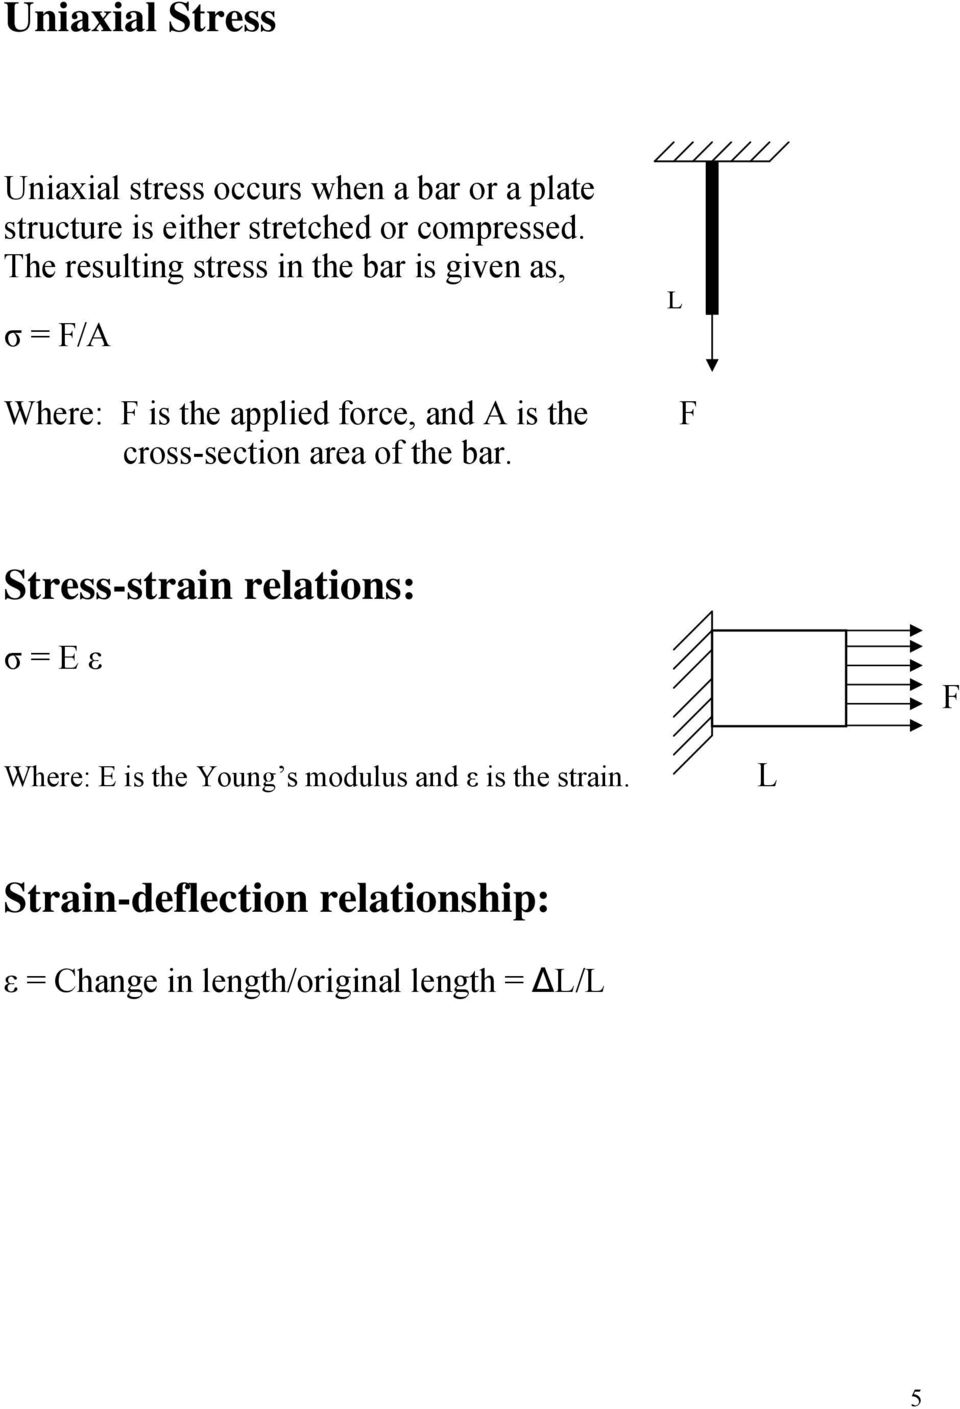 The resulting stress in the bar is given as, σ = F/A Where: F is the applied force, and A is the